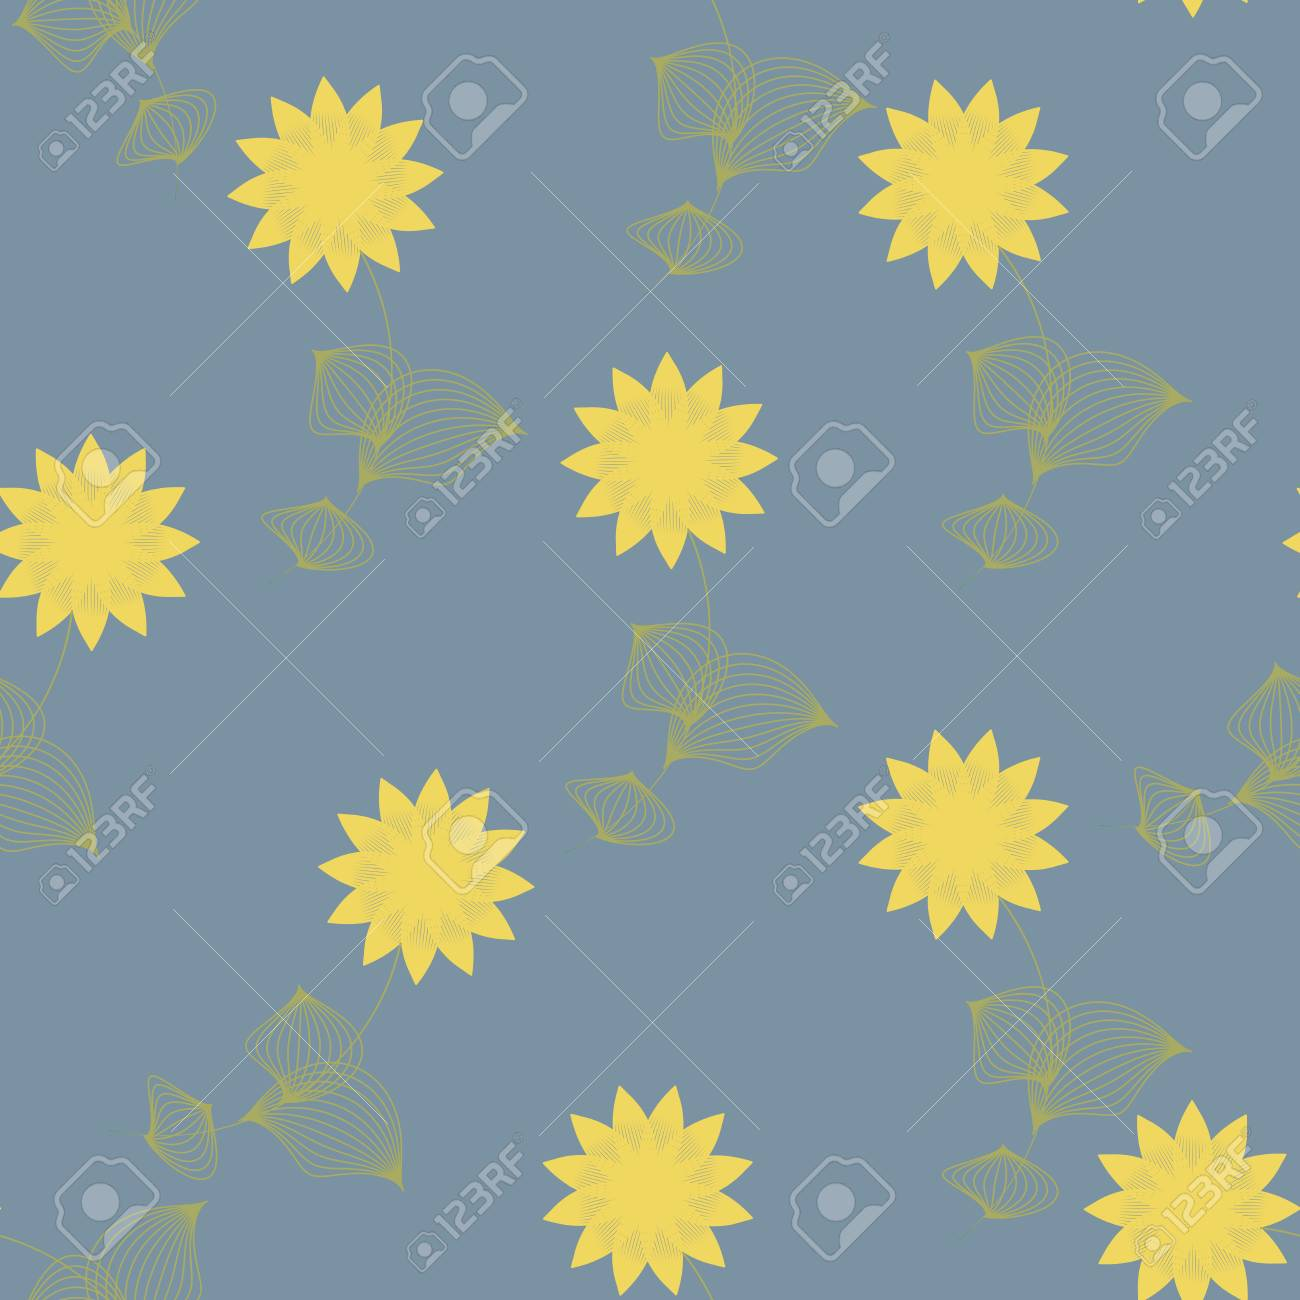 Yellow Flowers With Leaves Seamless Pattern On Grey Background